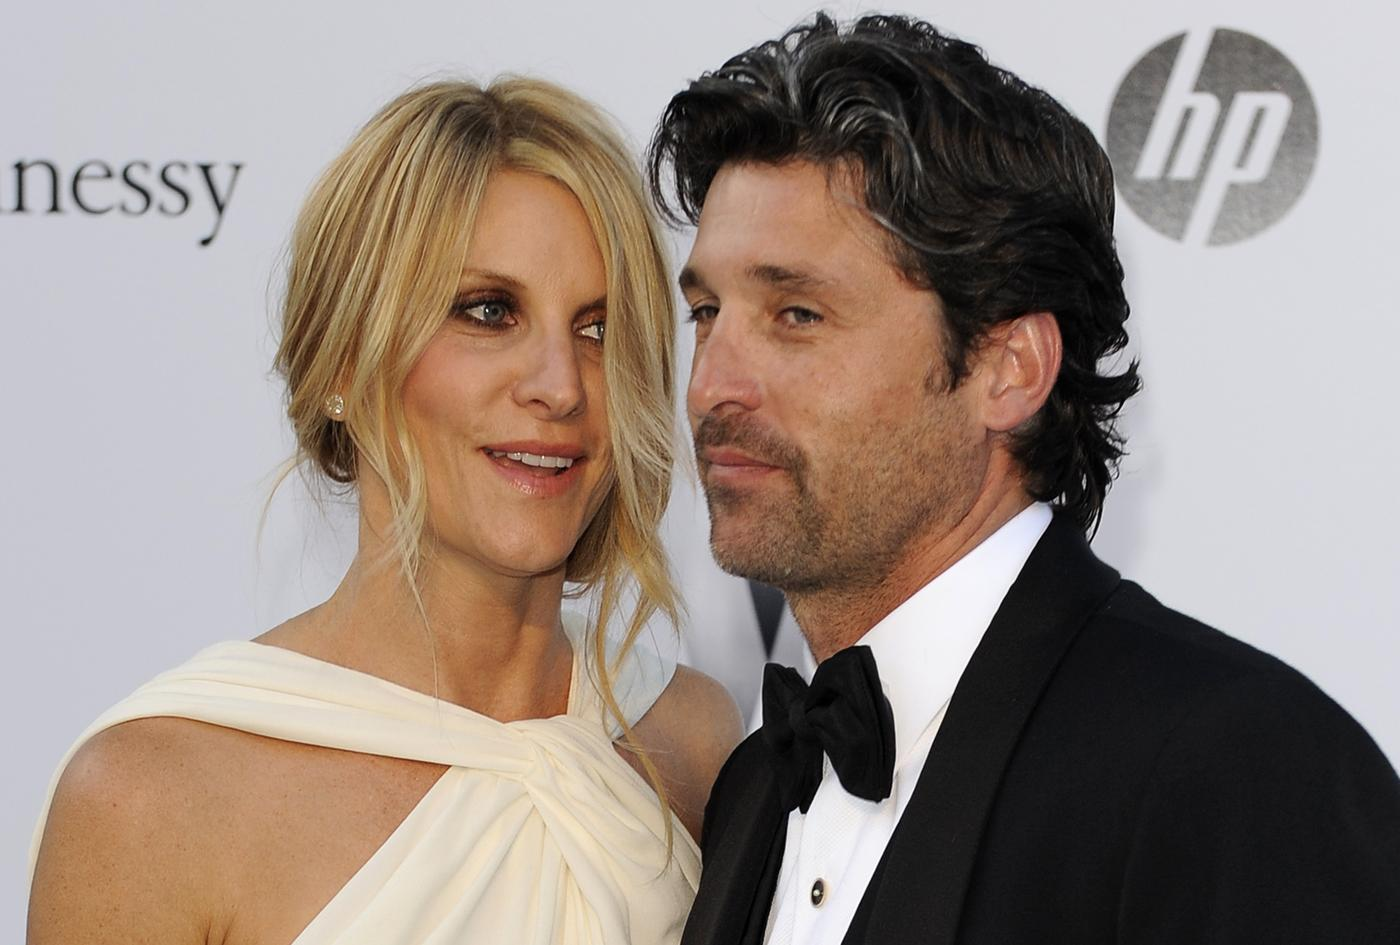 Jillian Fink, Patrick Dempsey AP Photo/Jonathan Short, File